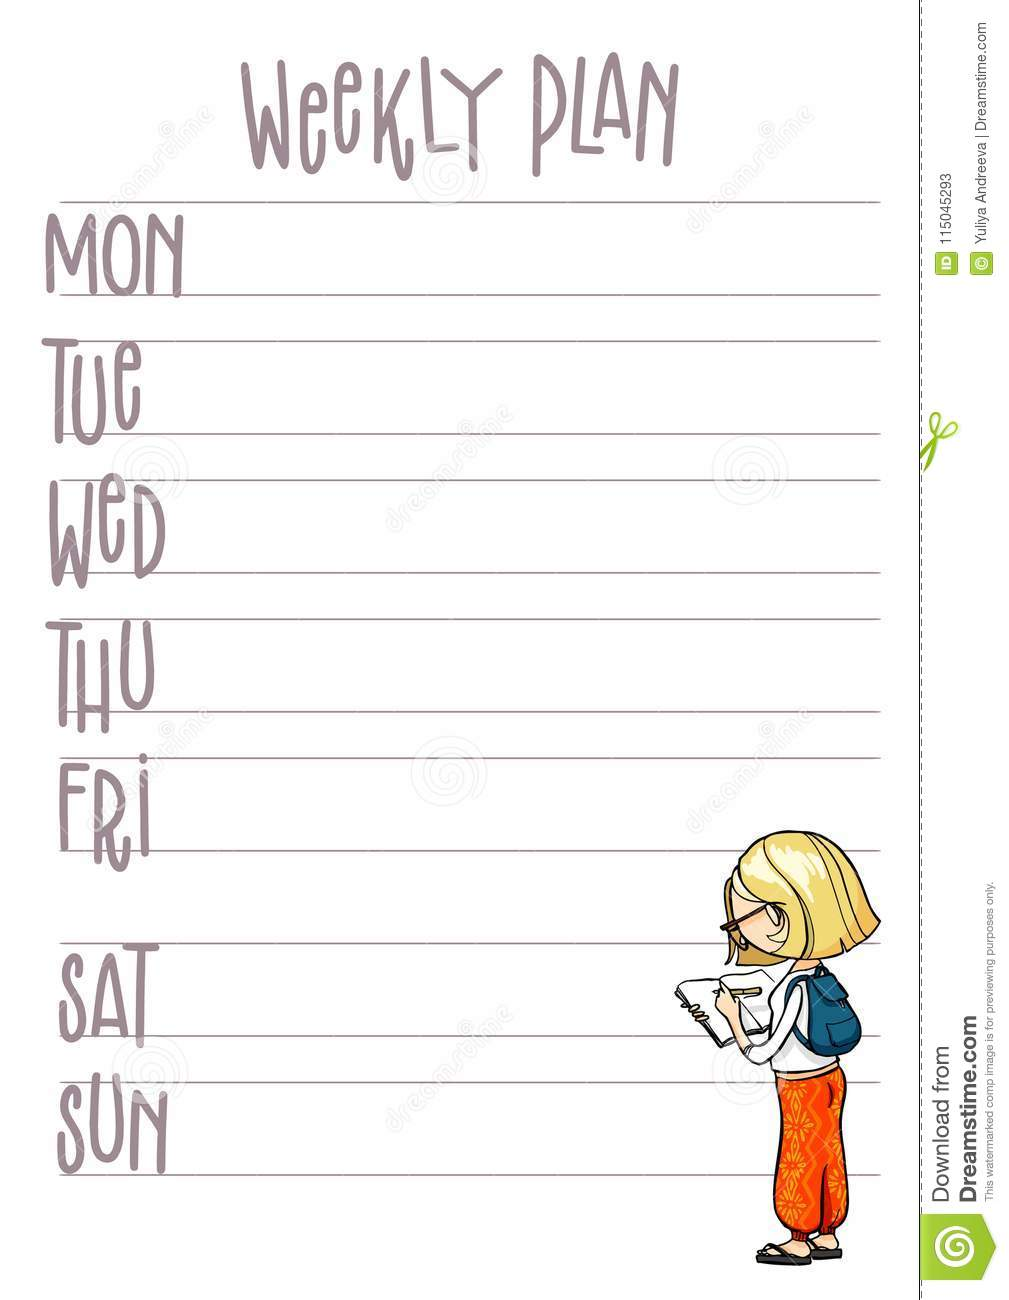 Weekly Plan  Planner With Cute Cartoon Character  Vector